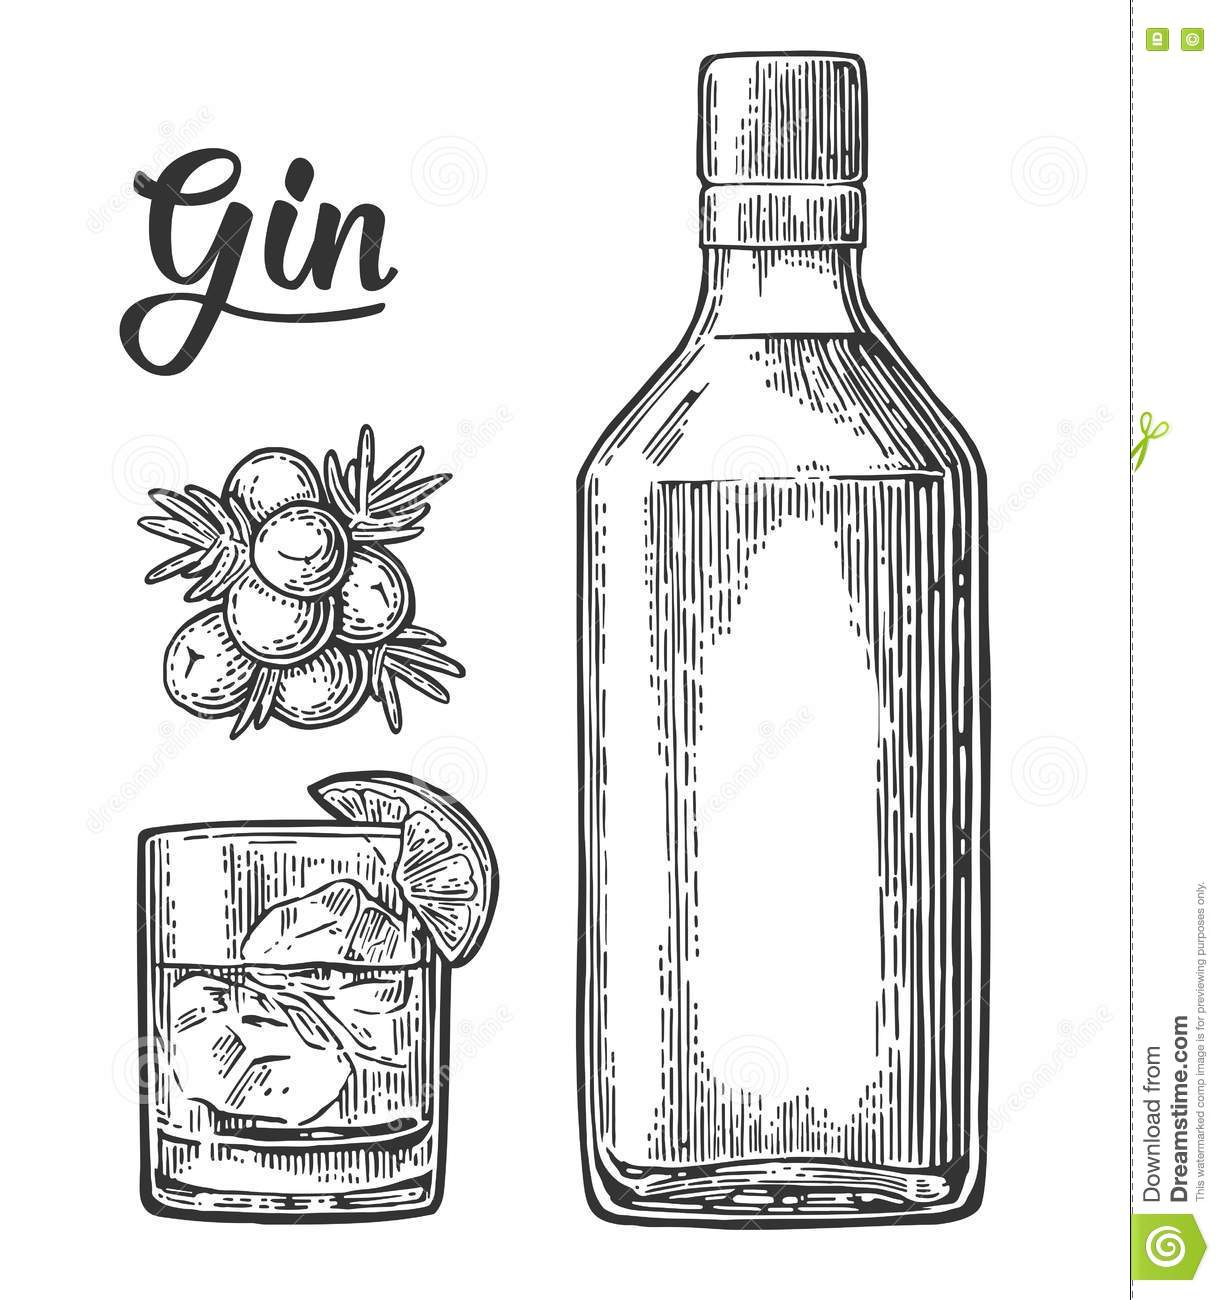 Free Vector Illustration Juniper: Glass And Bottle Of Gin And Branch Of Juniper With Berries Stock Vector